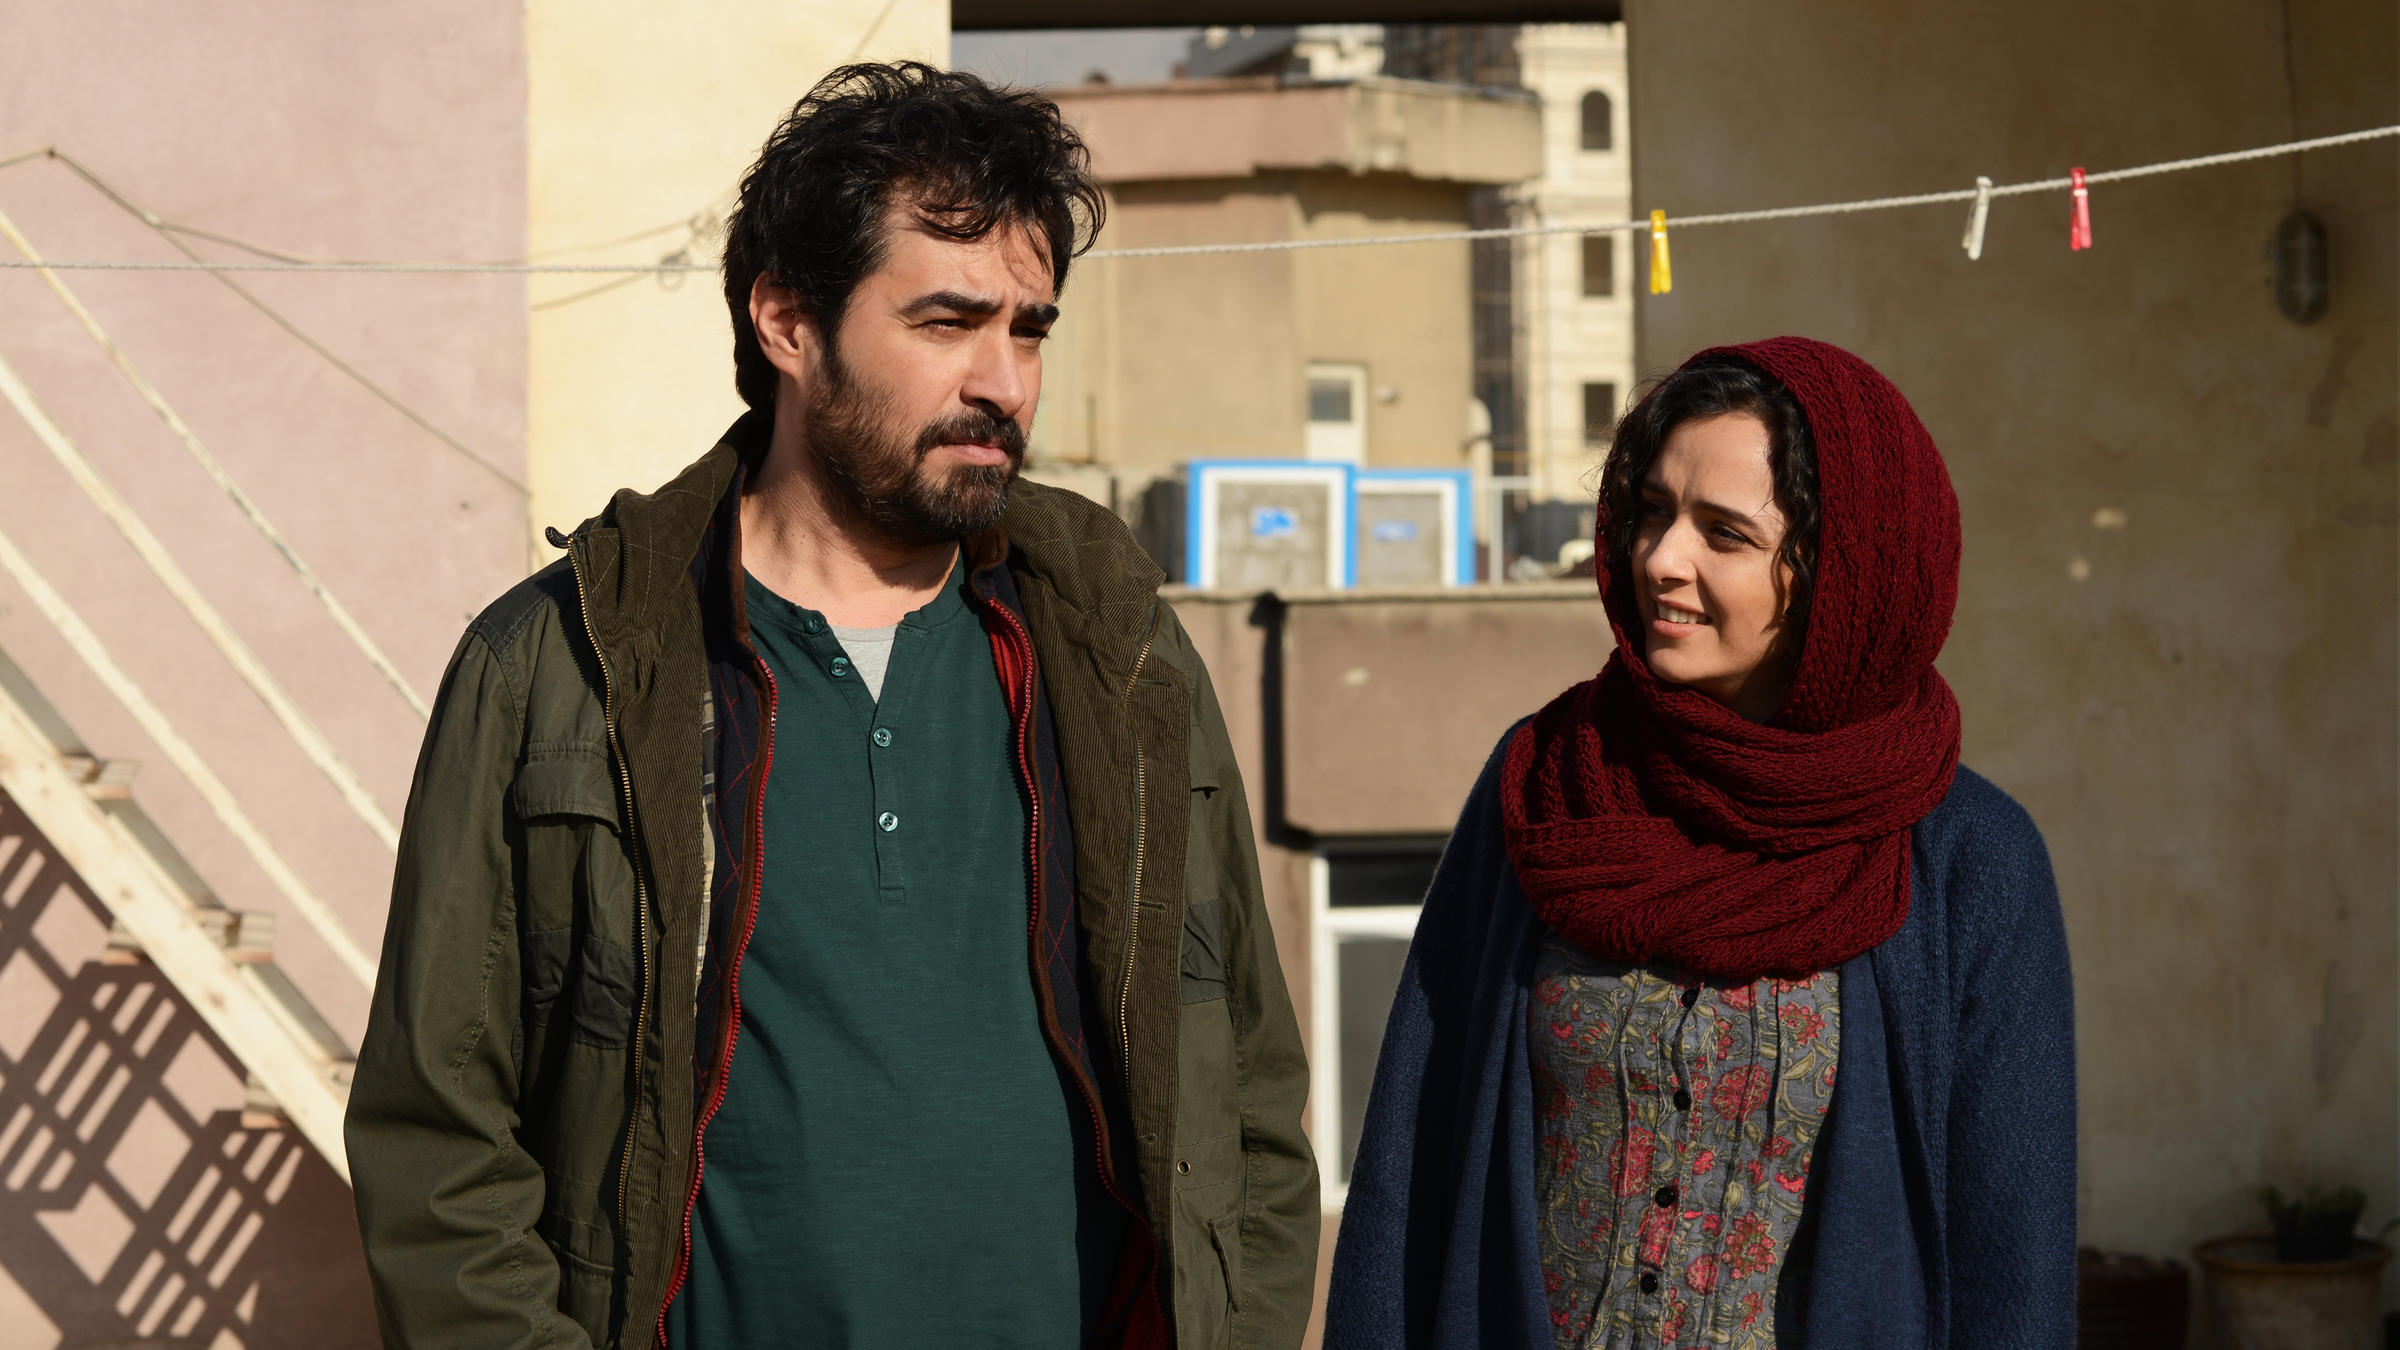 Iranian Star of 'The Salesman' to Boycott Oscars Over Trump's Visa Ban